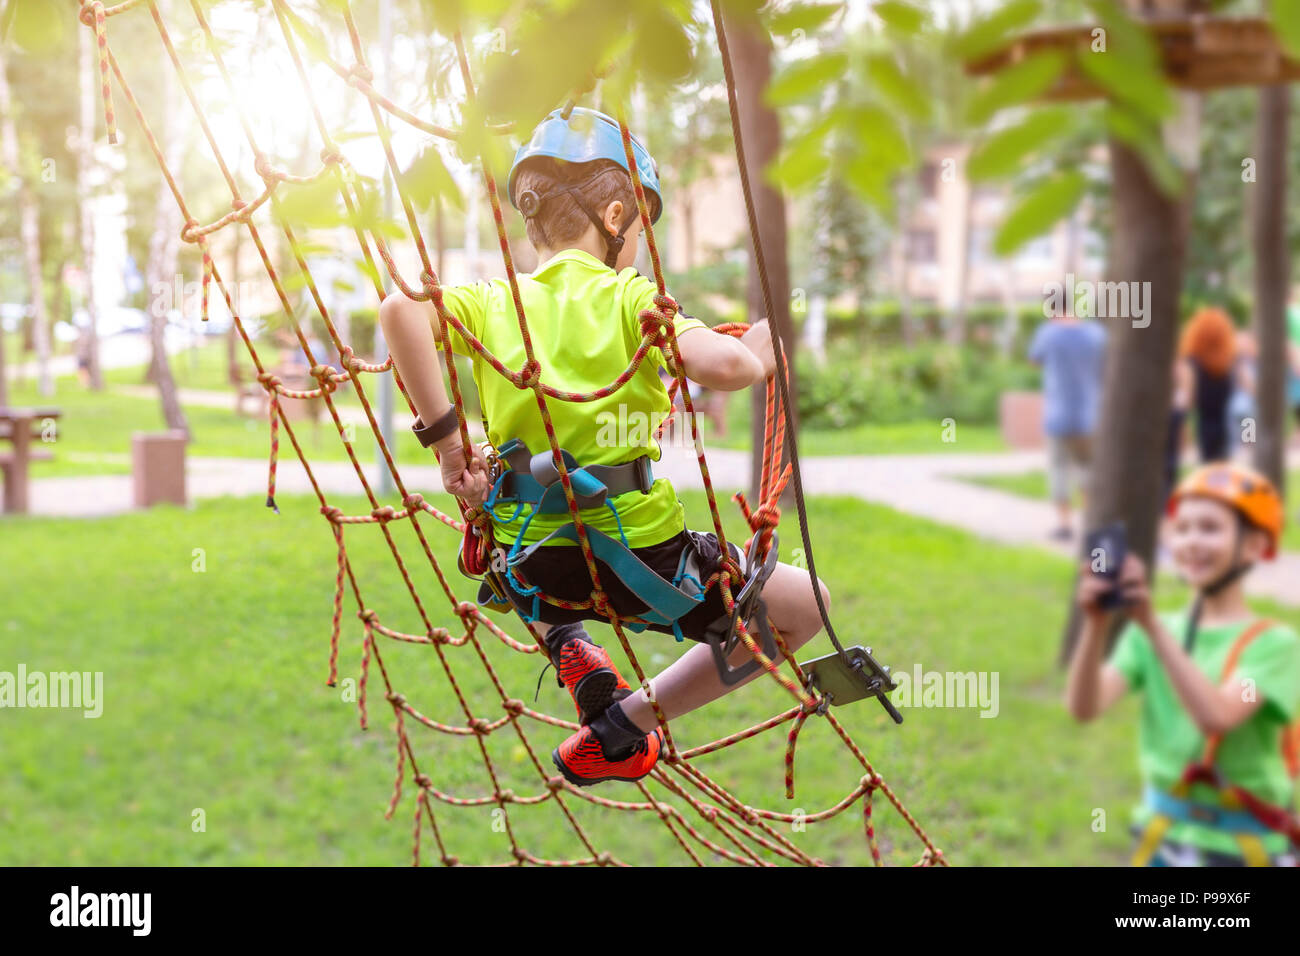 Little boy in safety equipment climbing on rope wall at adventure park. Fiend making a photo shot on smartphone. Children summer sport extreme outdoor - Stock Image